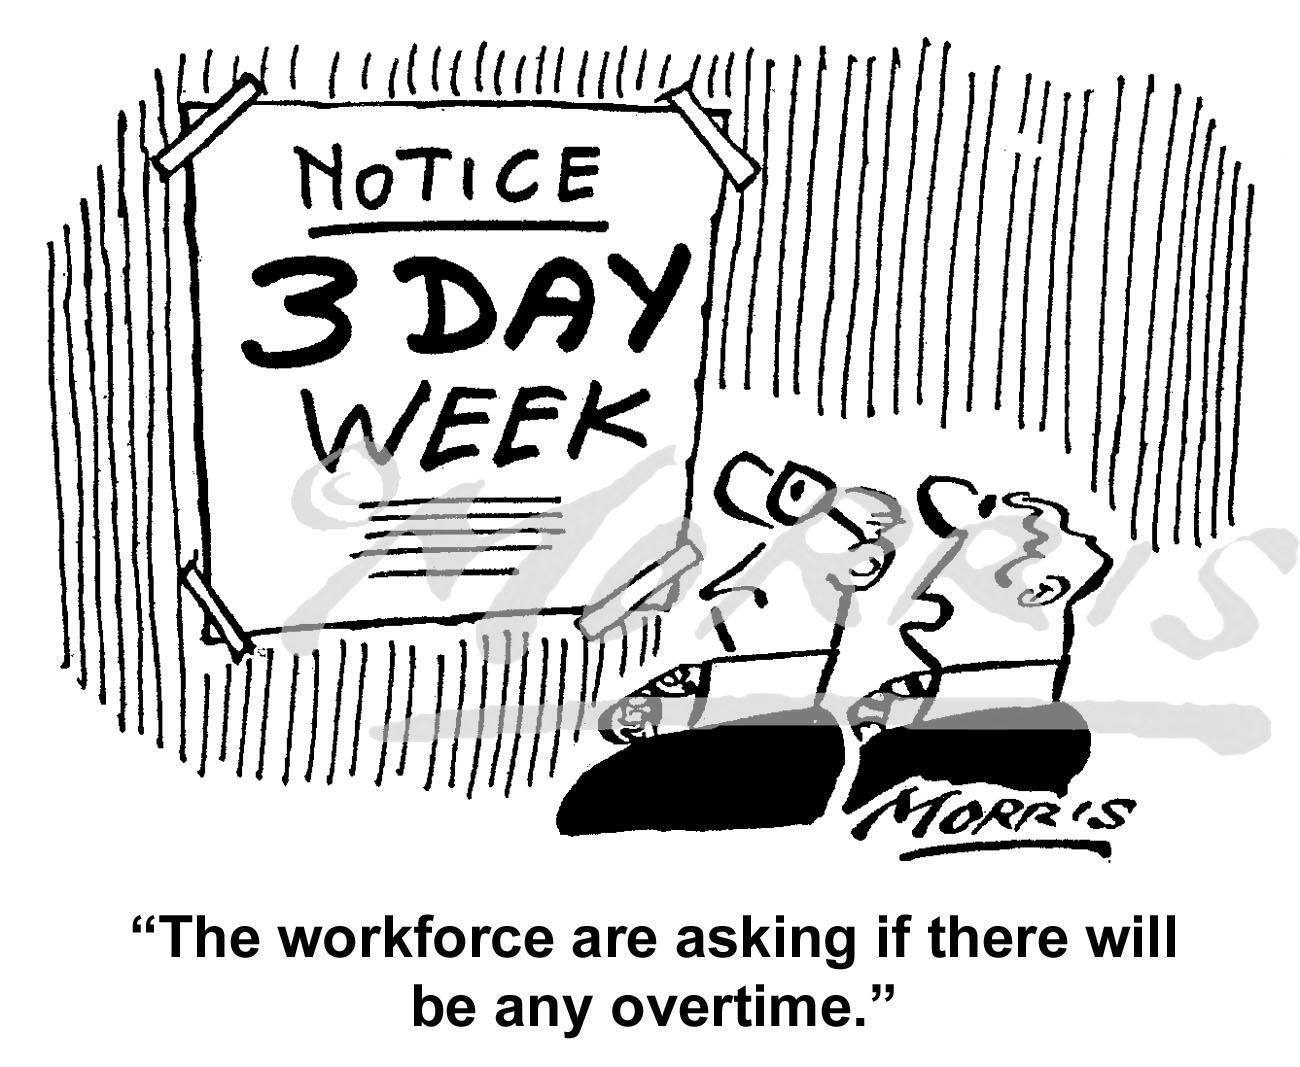 Workforce cartoon, Work cartoon, Overtime cartoon – Ref: 6163bw